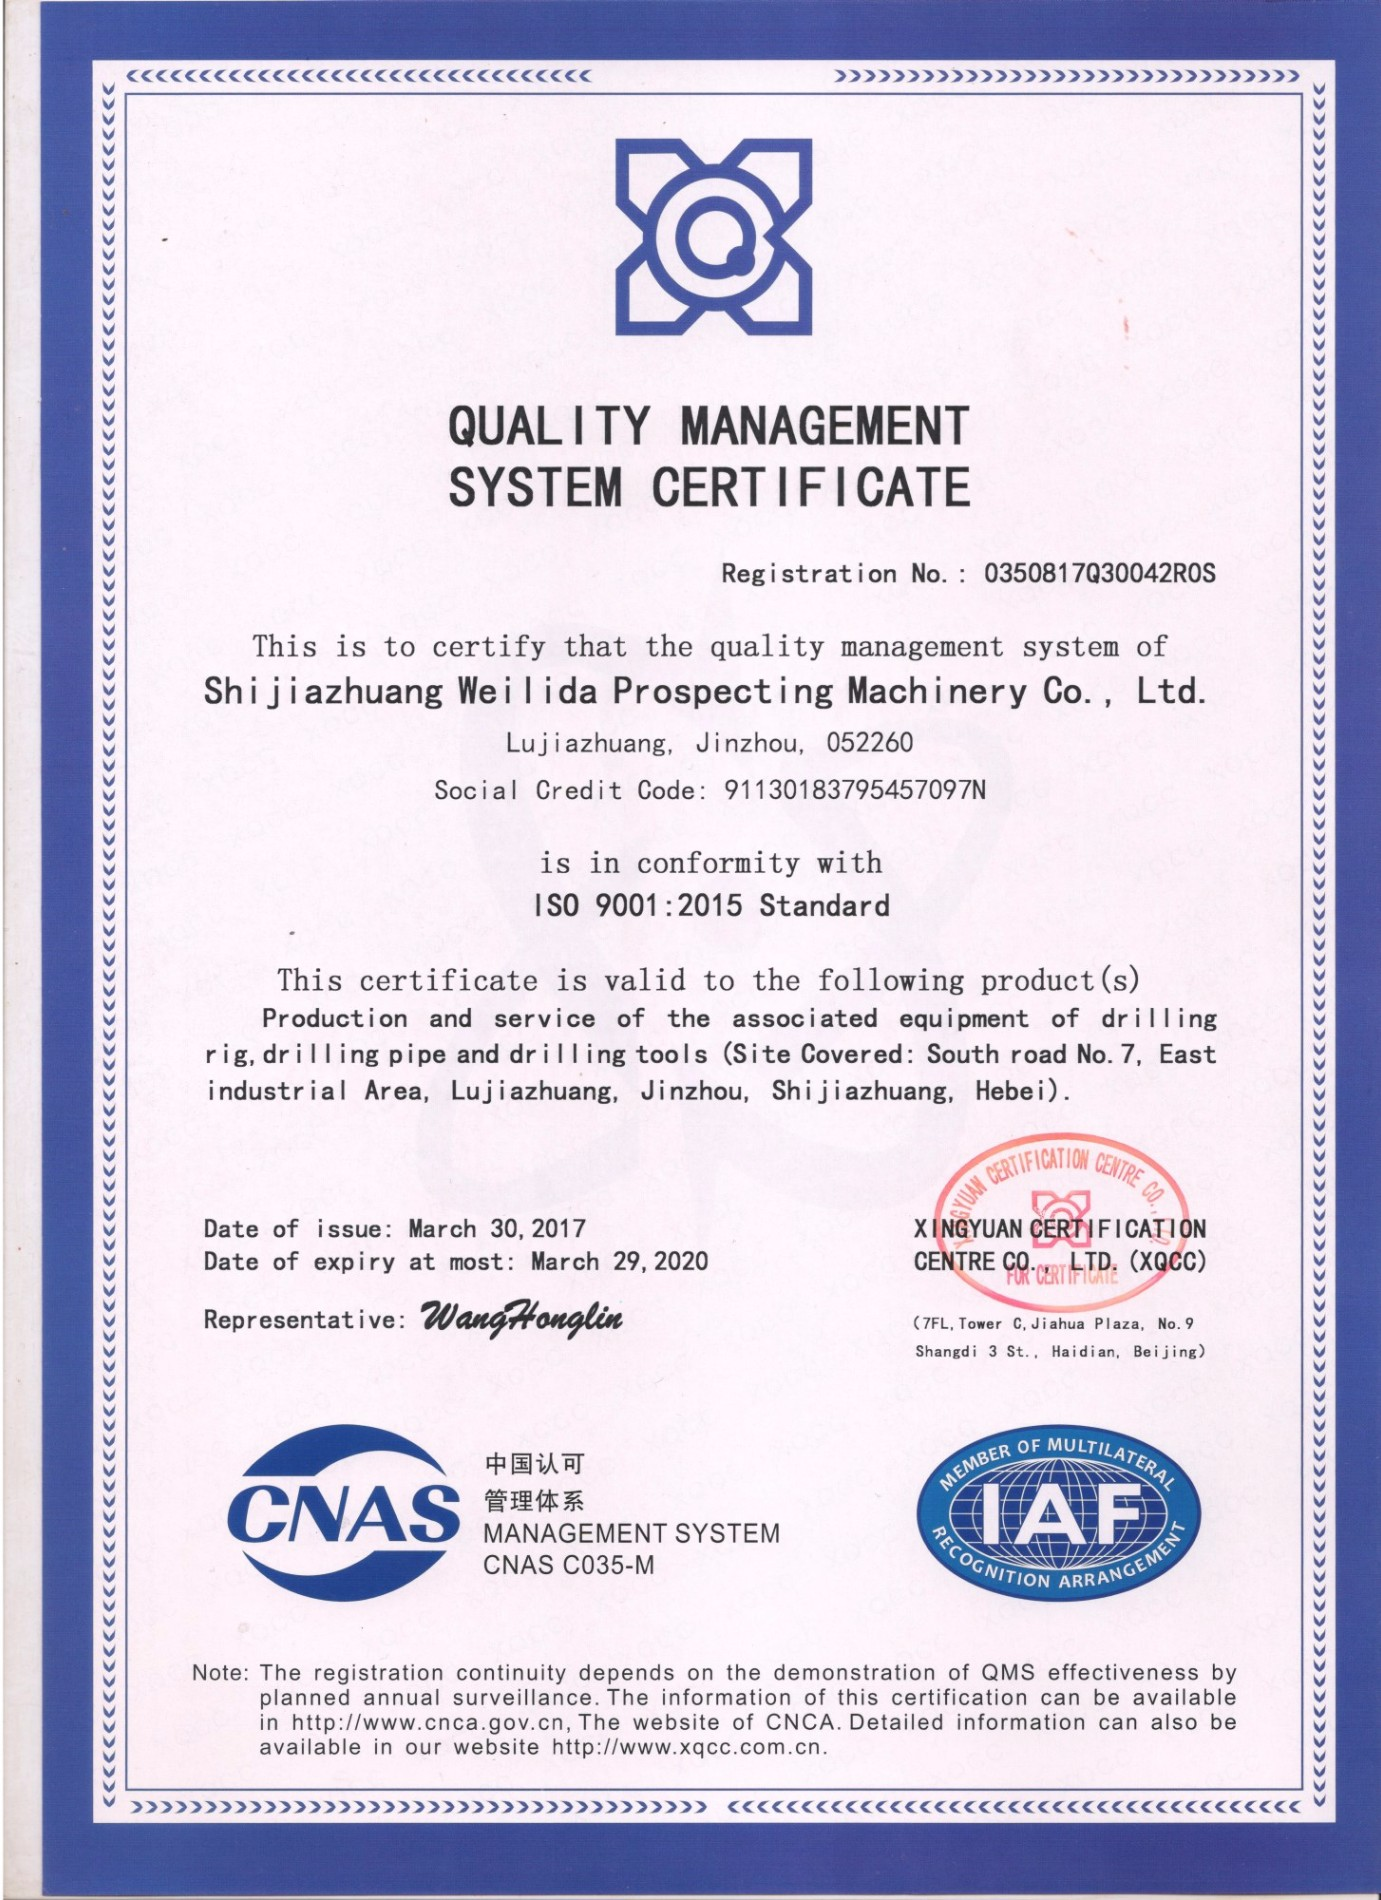 We Passed The Quality Management System Certificate